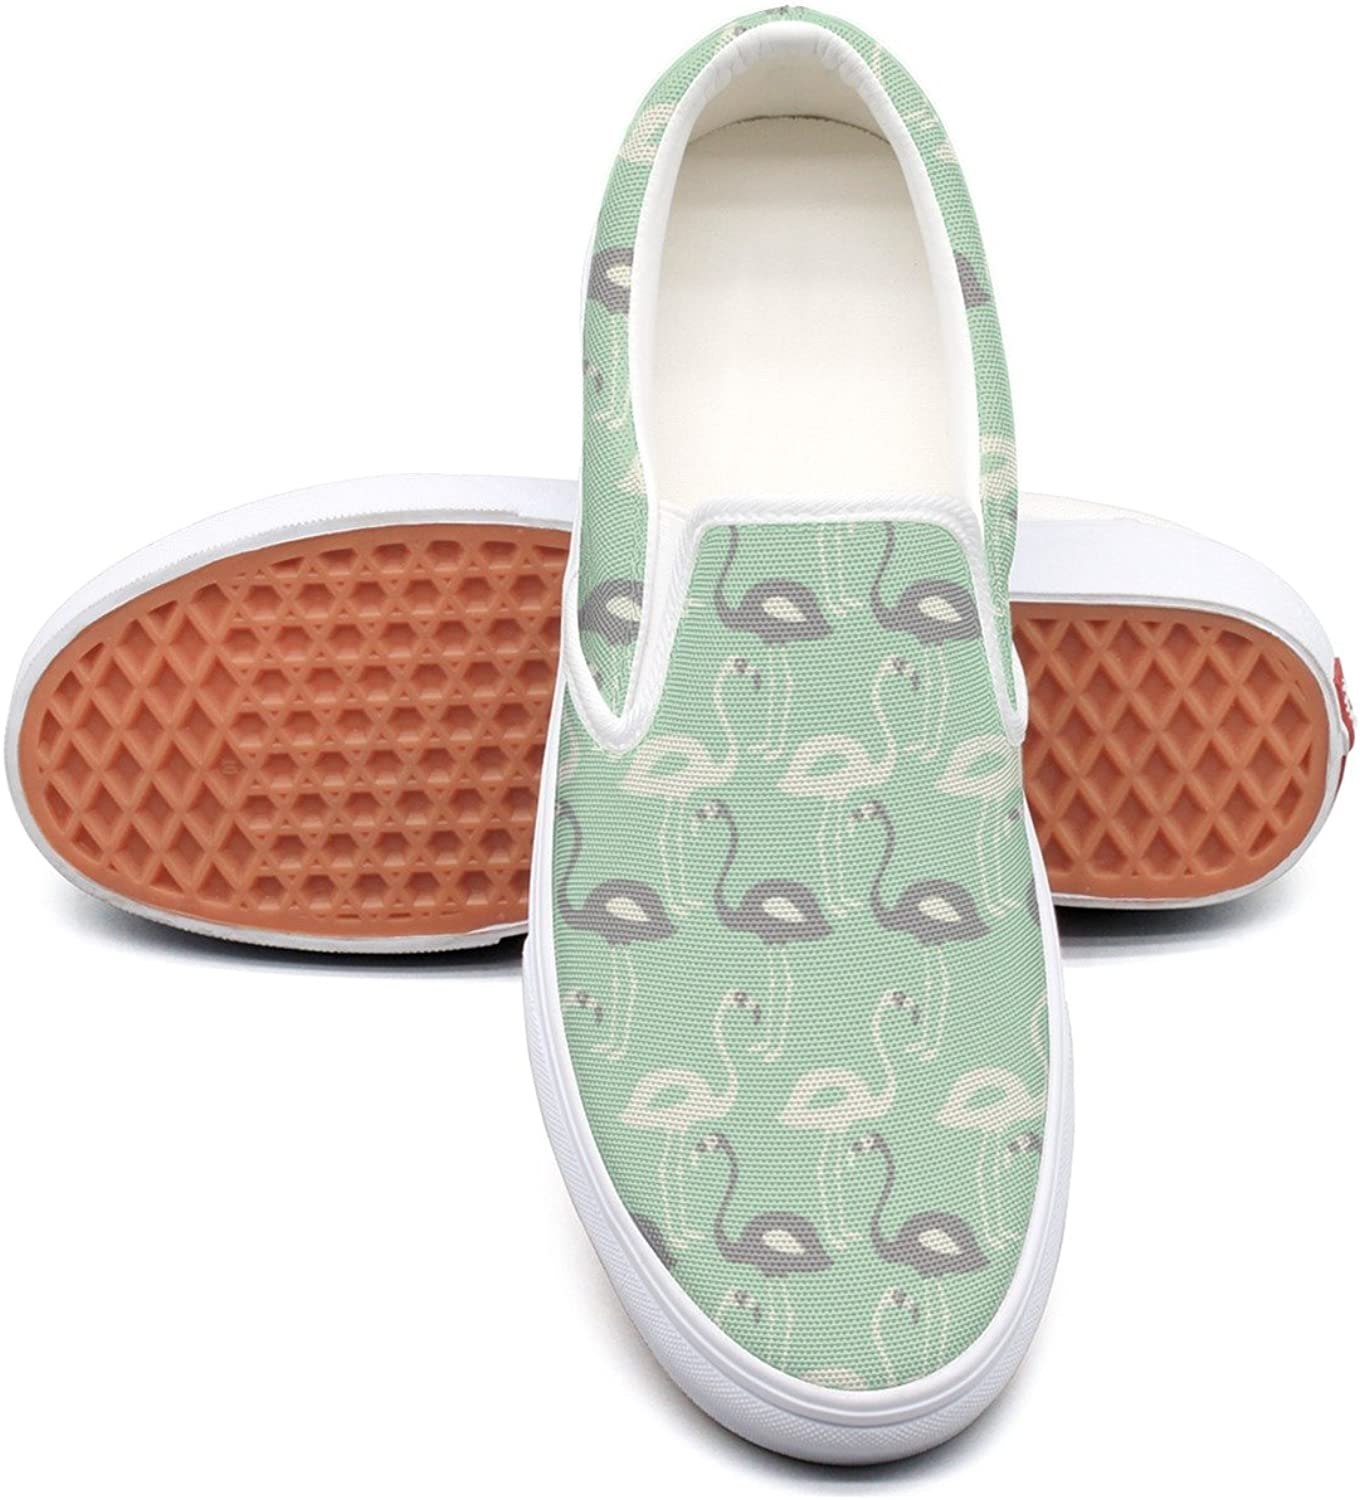 Hjkggd fgfds Casual Flamingo On Mint Womens Ladies Canvas shoes